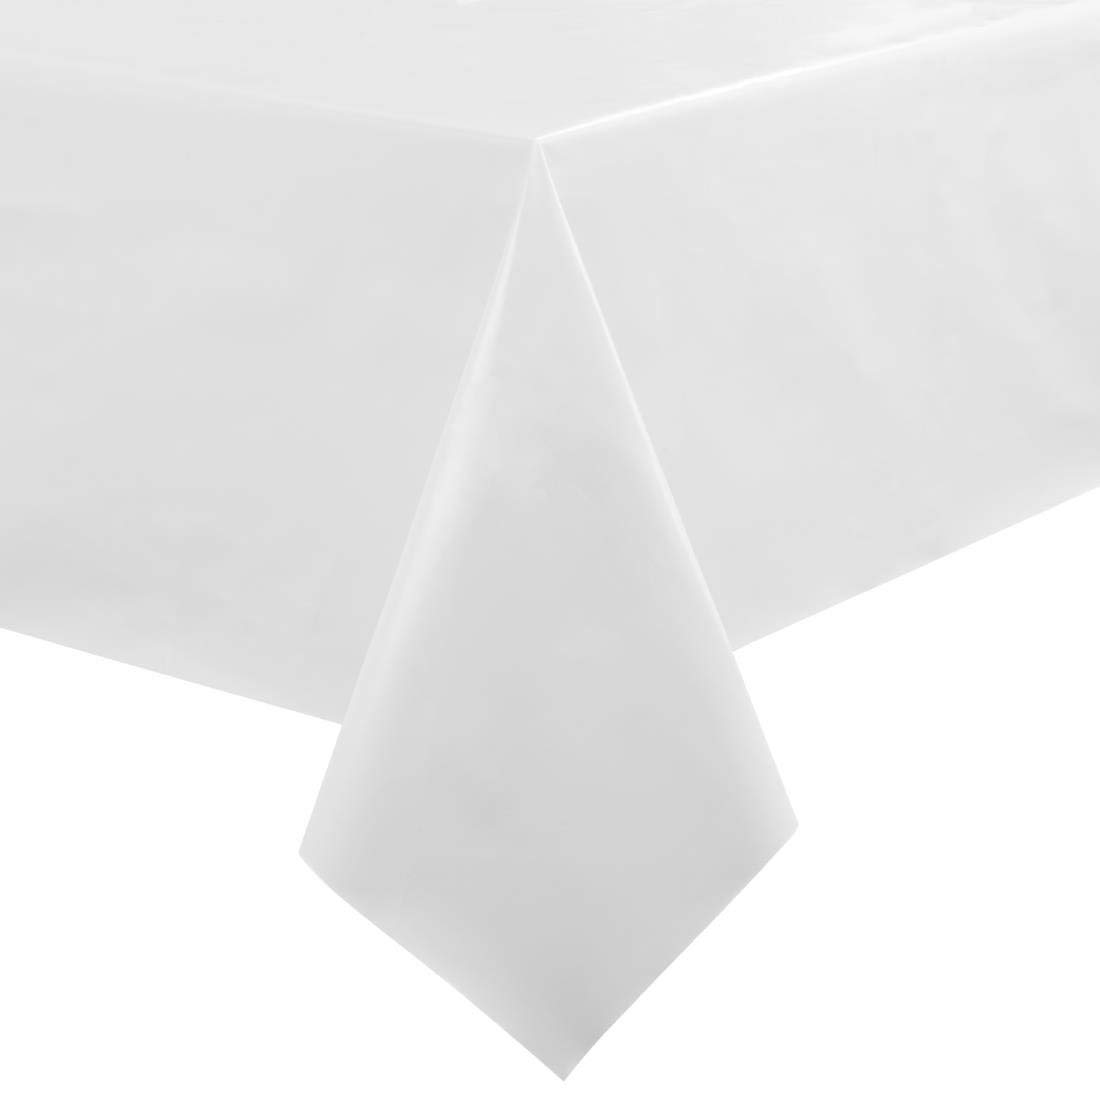 Plain White Stalwart GH174 Table Cloth 35 x 35 890 mm x 890 mm PVC